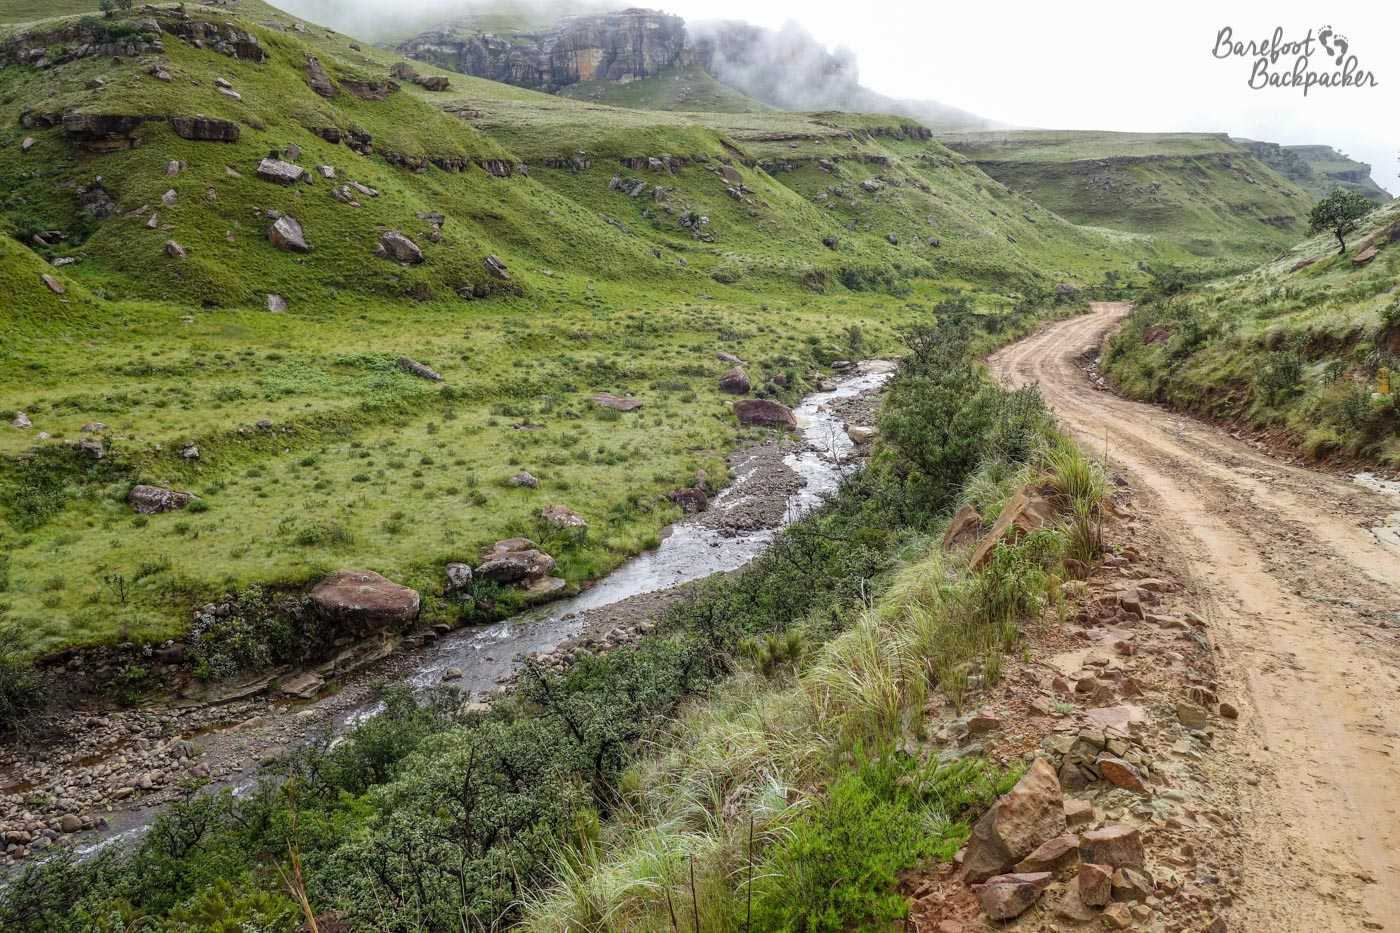 The Sani Pass has reached the flatter plains of South Africa. It's also now a complete mud-heap. Hopefully this is no longer the case.